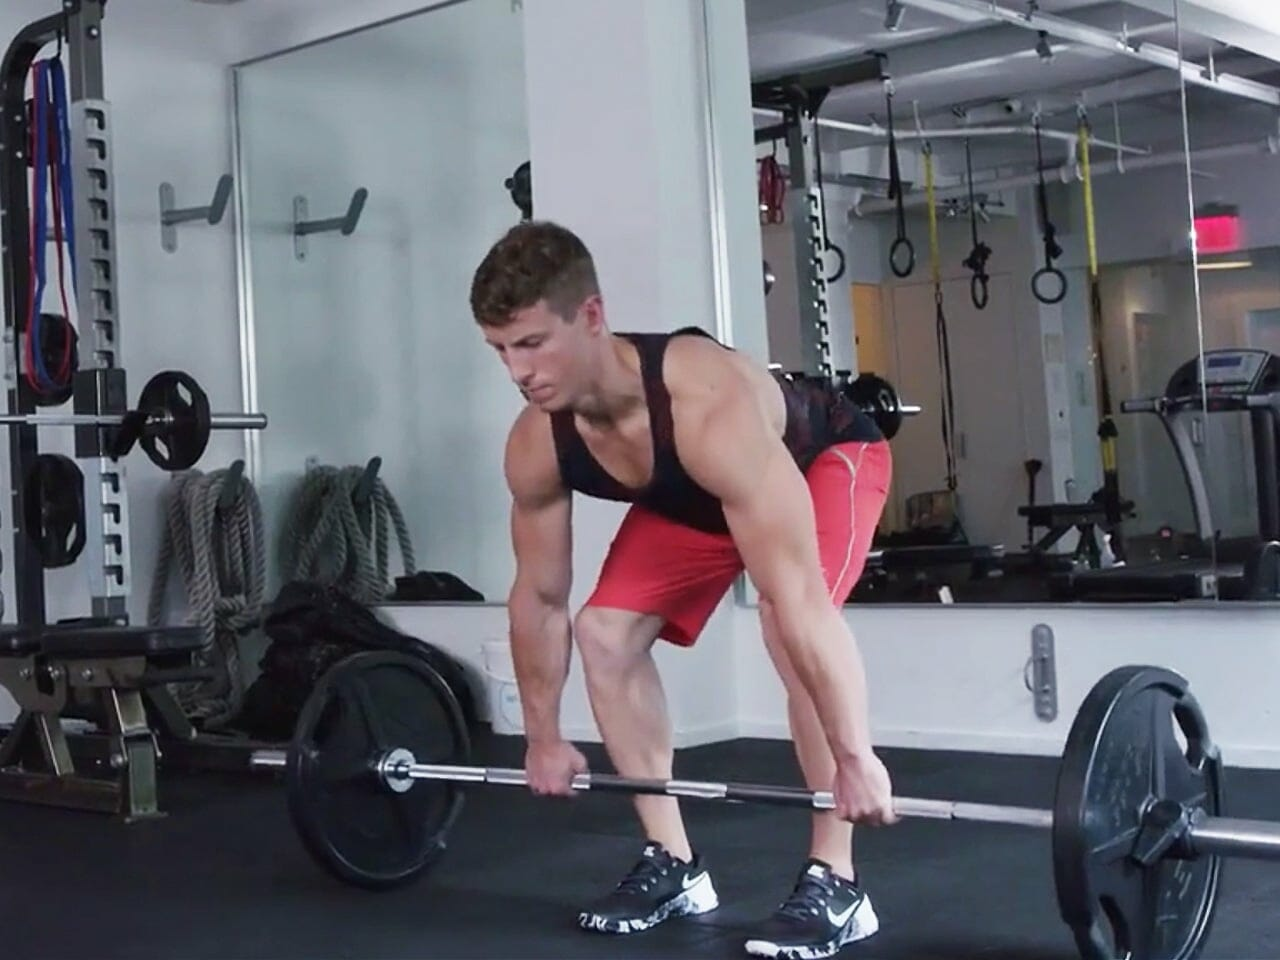 Man performing deadlift exercise